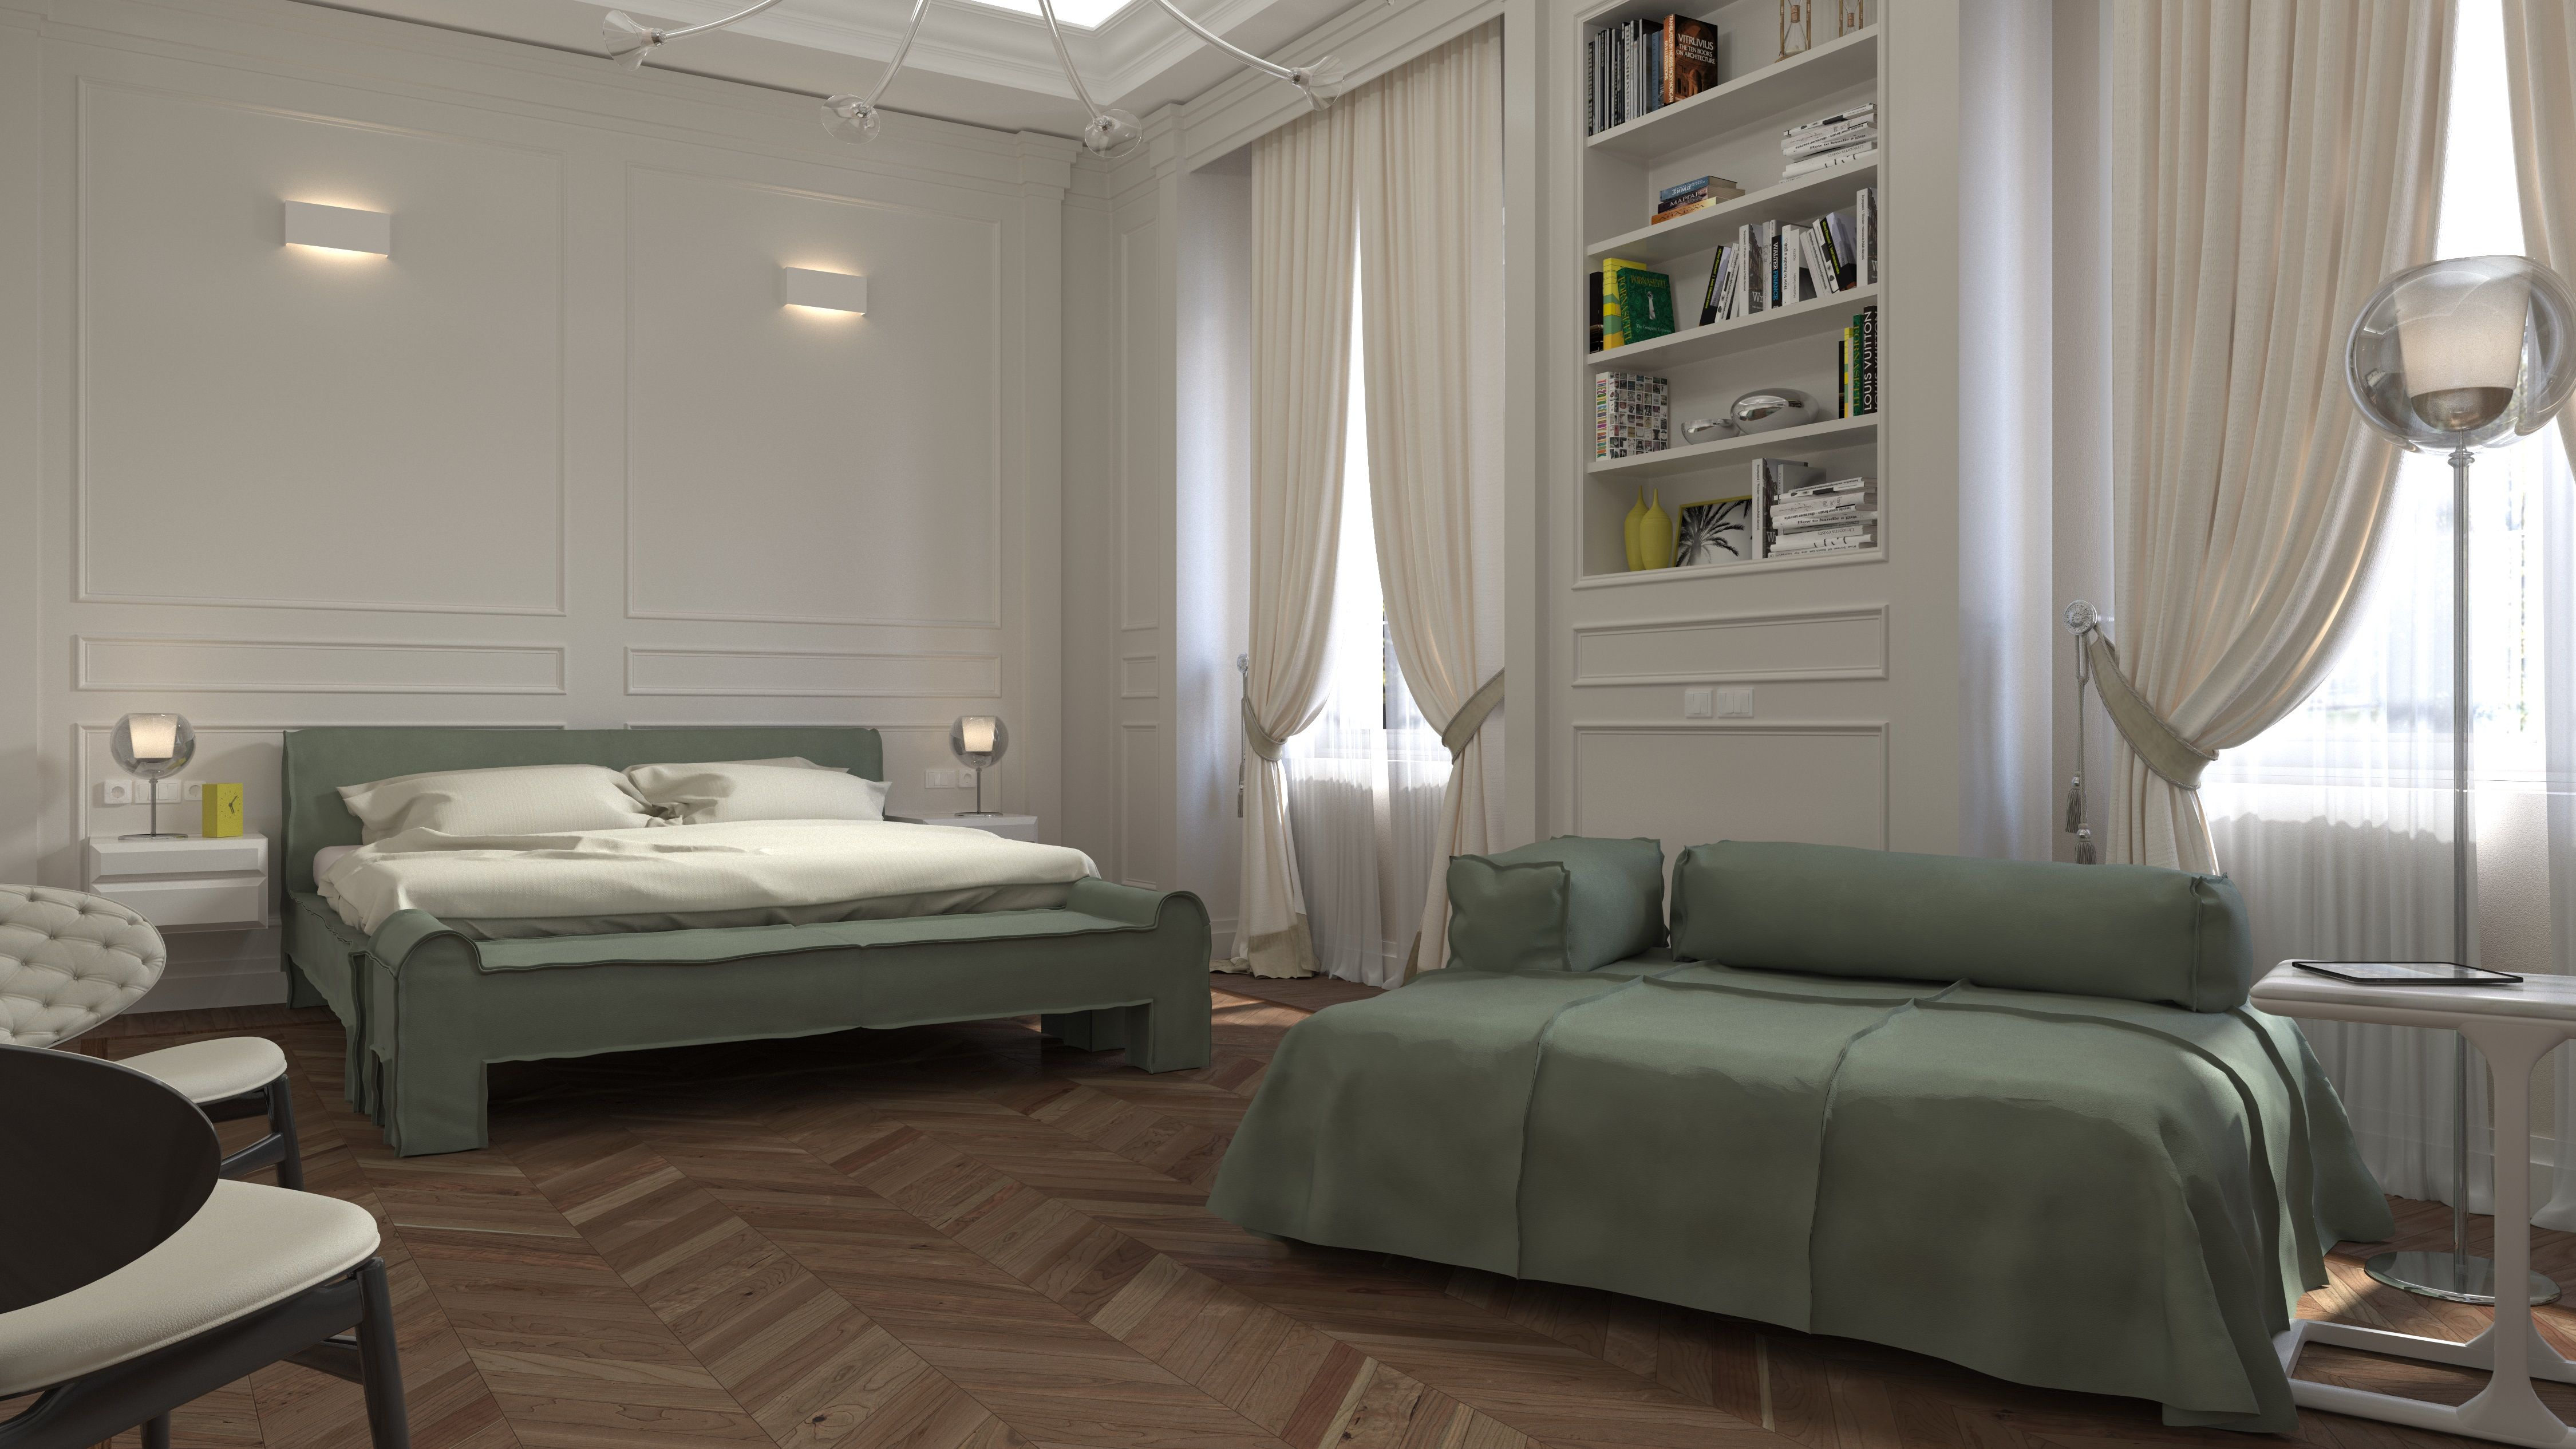 Bedroom 1 4 Img001 #Massimotrezziforniture Project By Massimo Trezzi Forniture